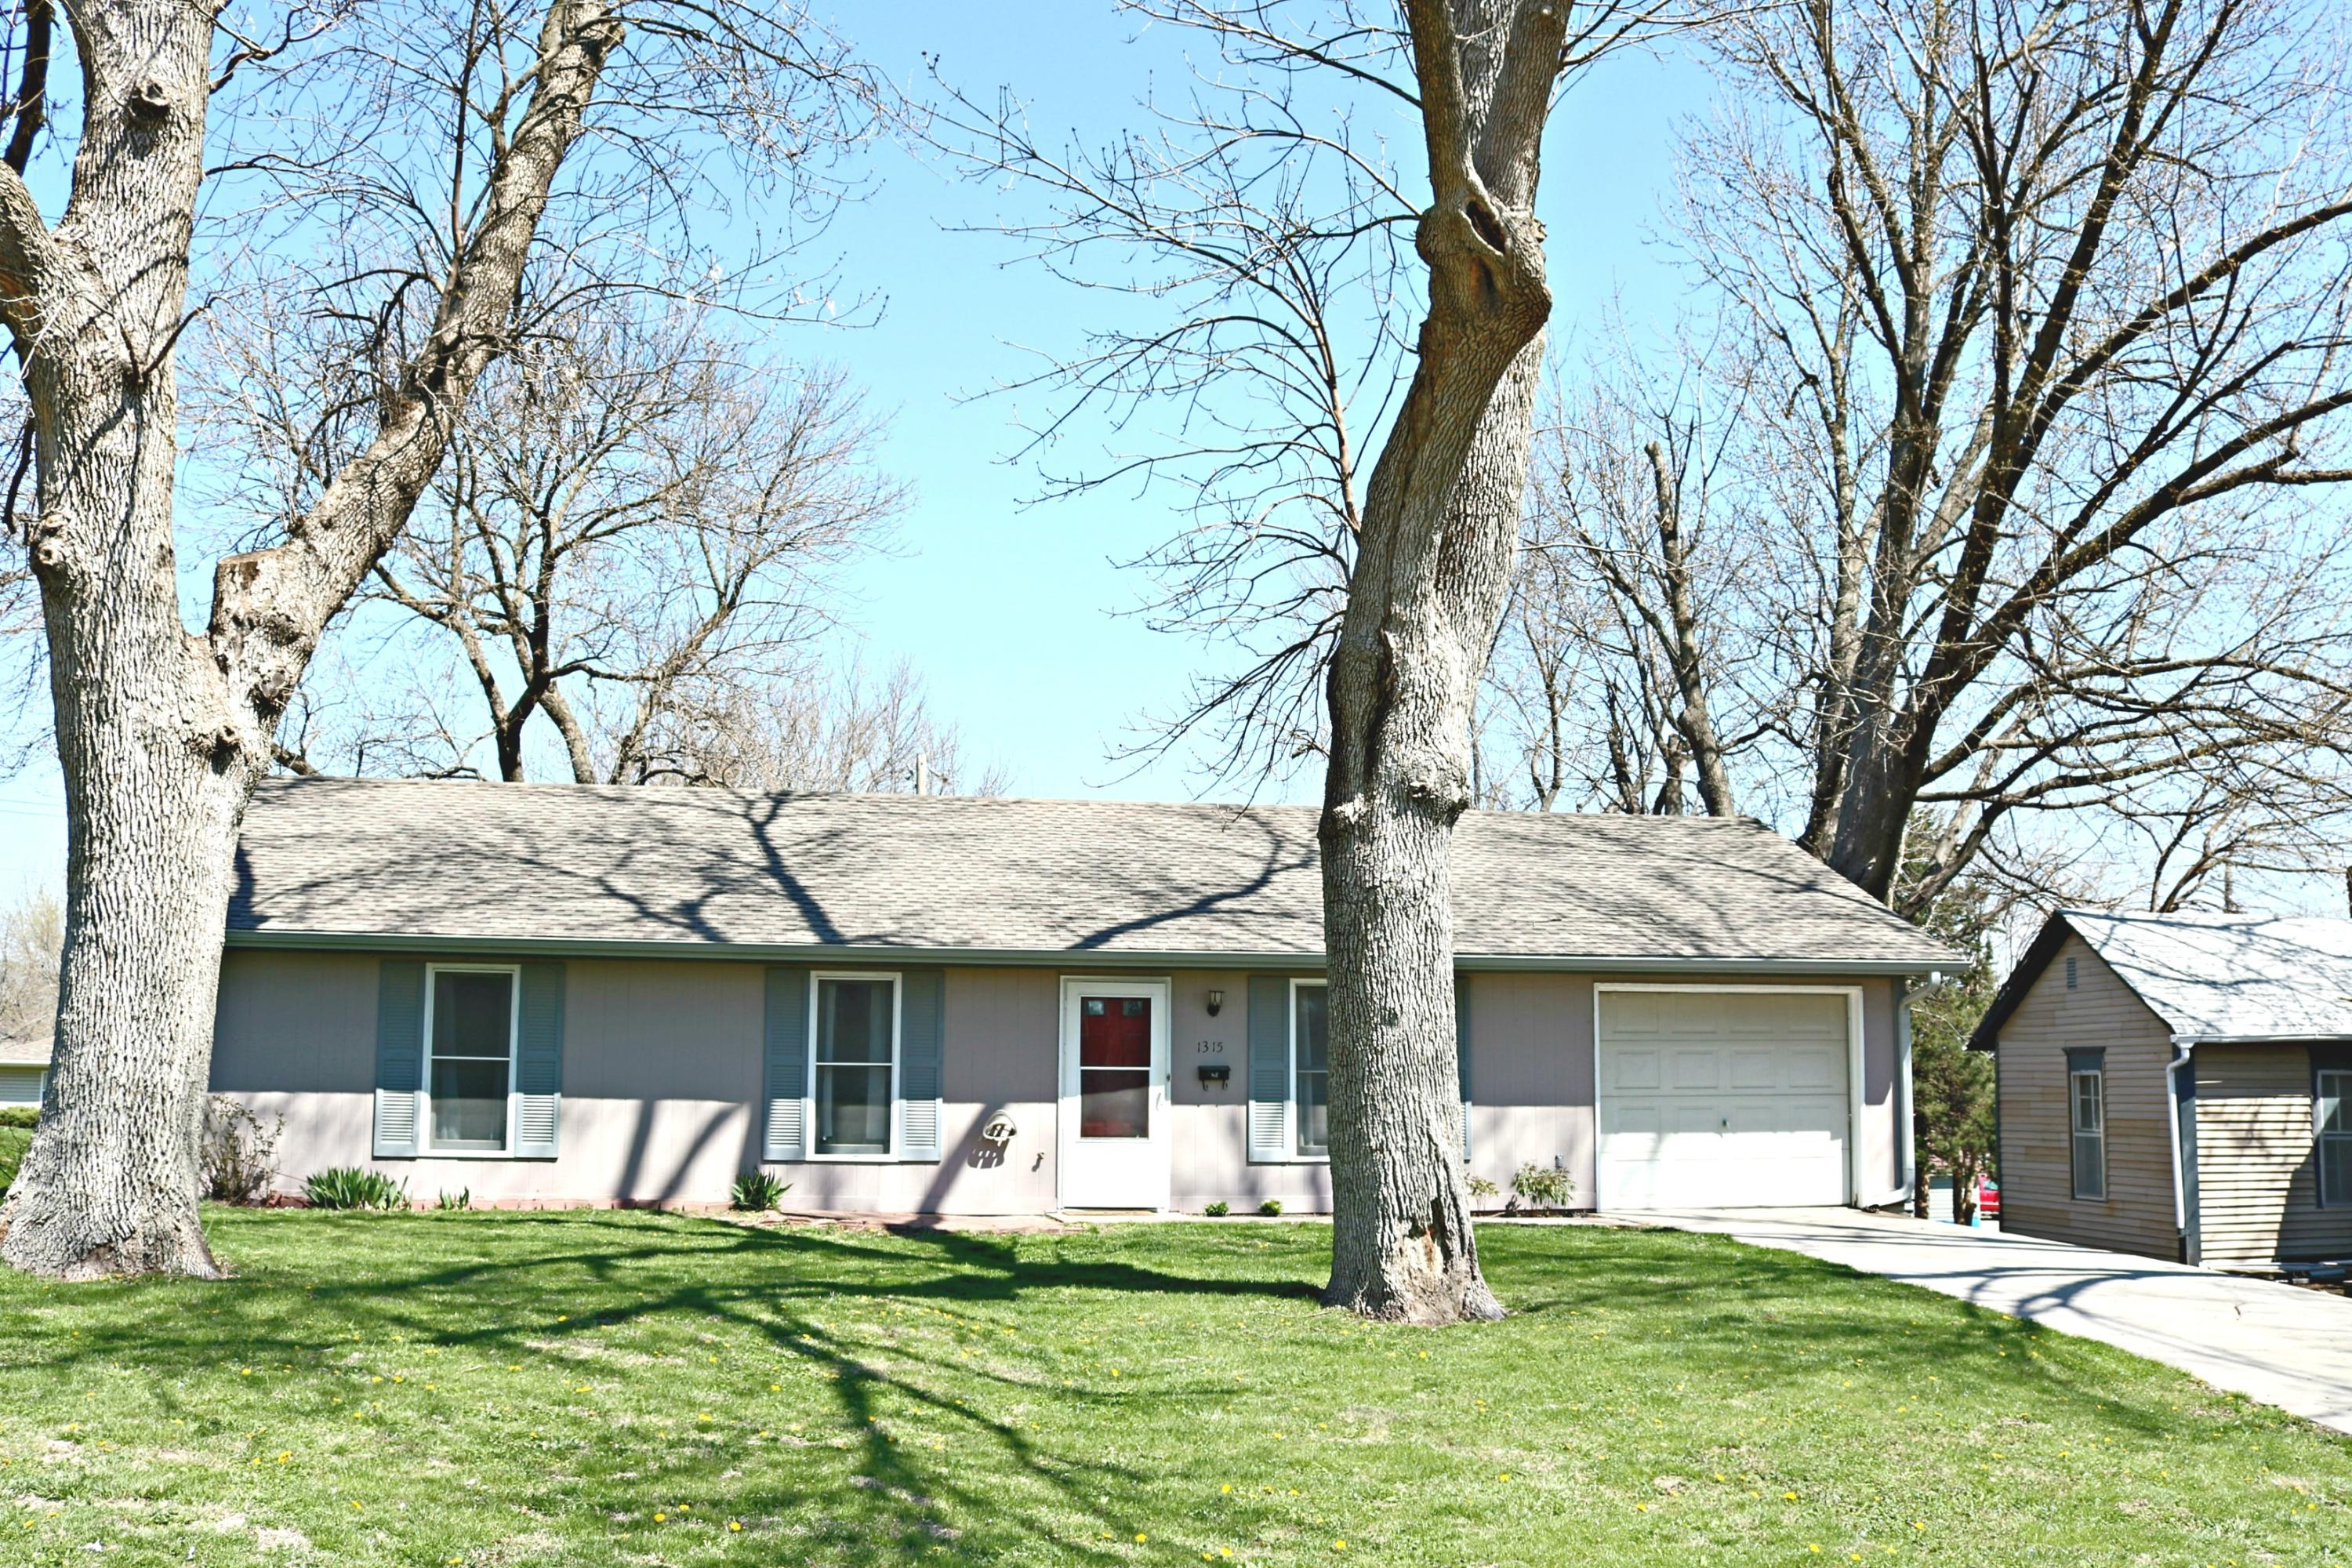 1315 E 2ND Street, Maryville, Missouri 64468, 3 Bedrooms Bedrooms, ,2 BathroomsBathrooms,Residential,2ND,4706